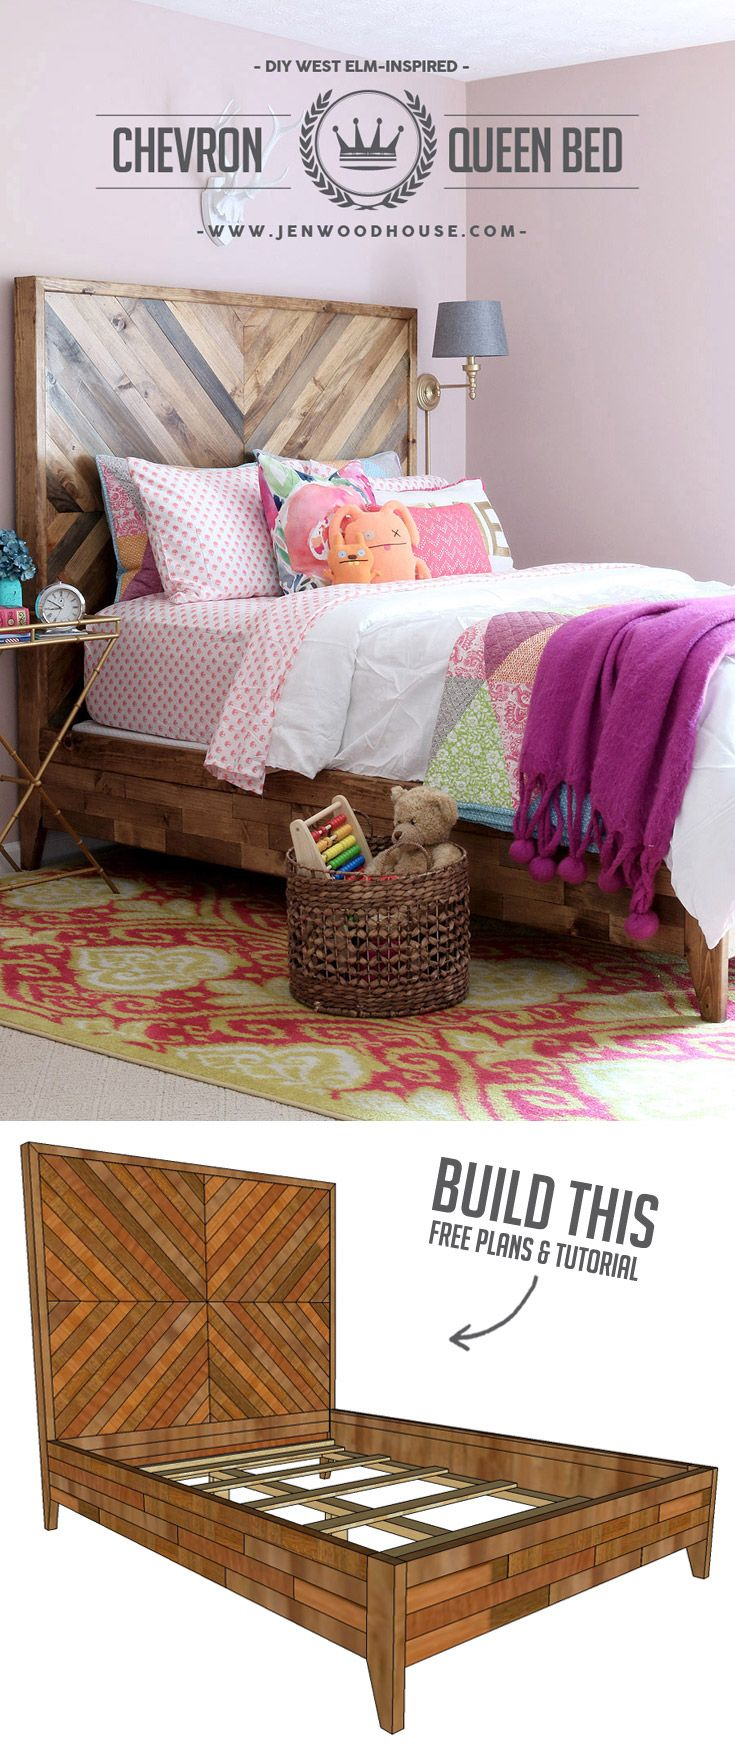 Pallet bedroom furniture plans - How To Build A Diy West Elm Alexa Bed Bed Furniturefurniture Plansreclaimed